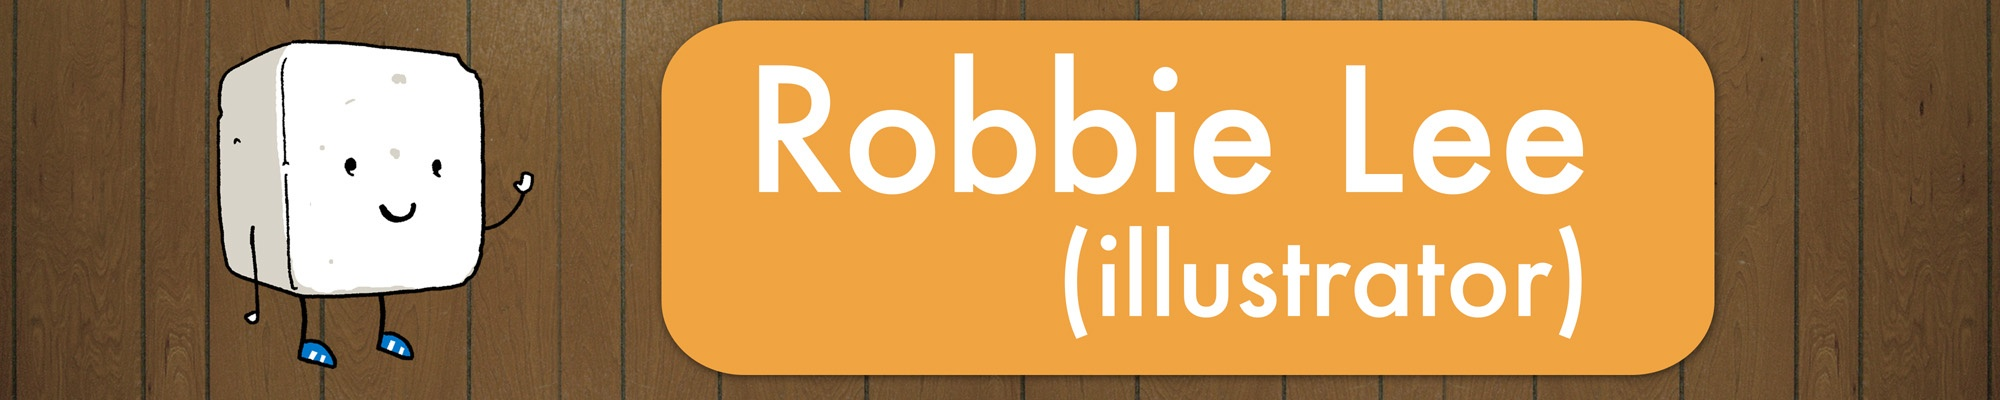 robbielee Cover